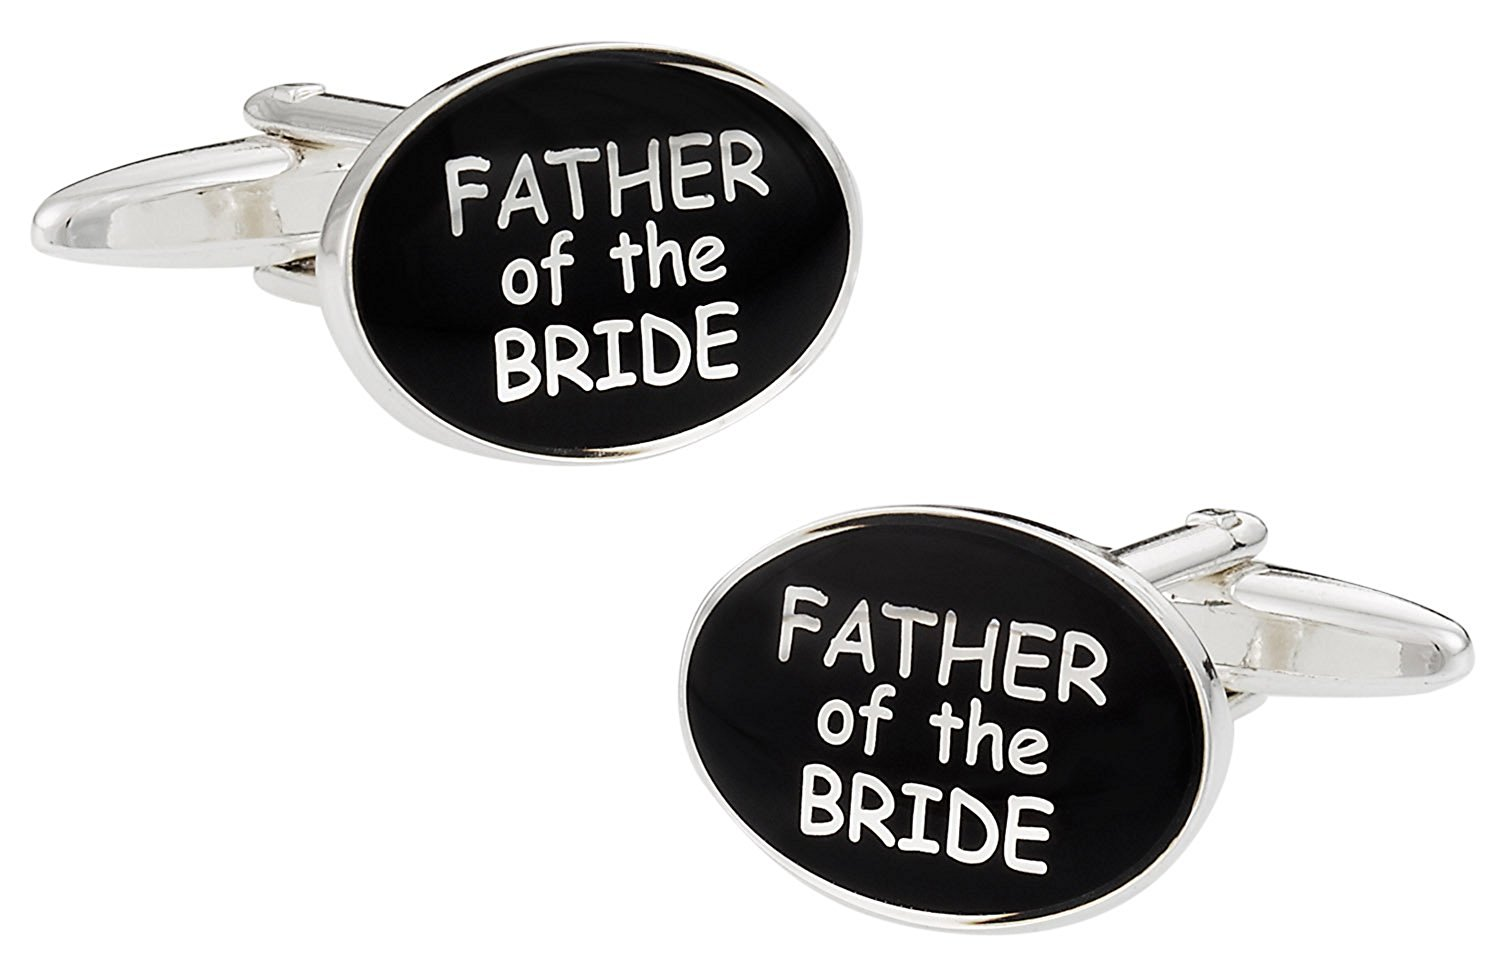 Cuff-Daddy Wedding Cufflinks for Father of the Bride in Black & Silver with Presentation Box